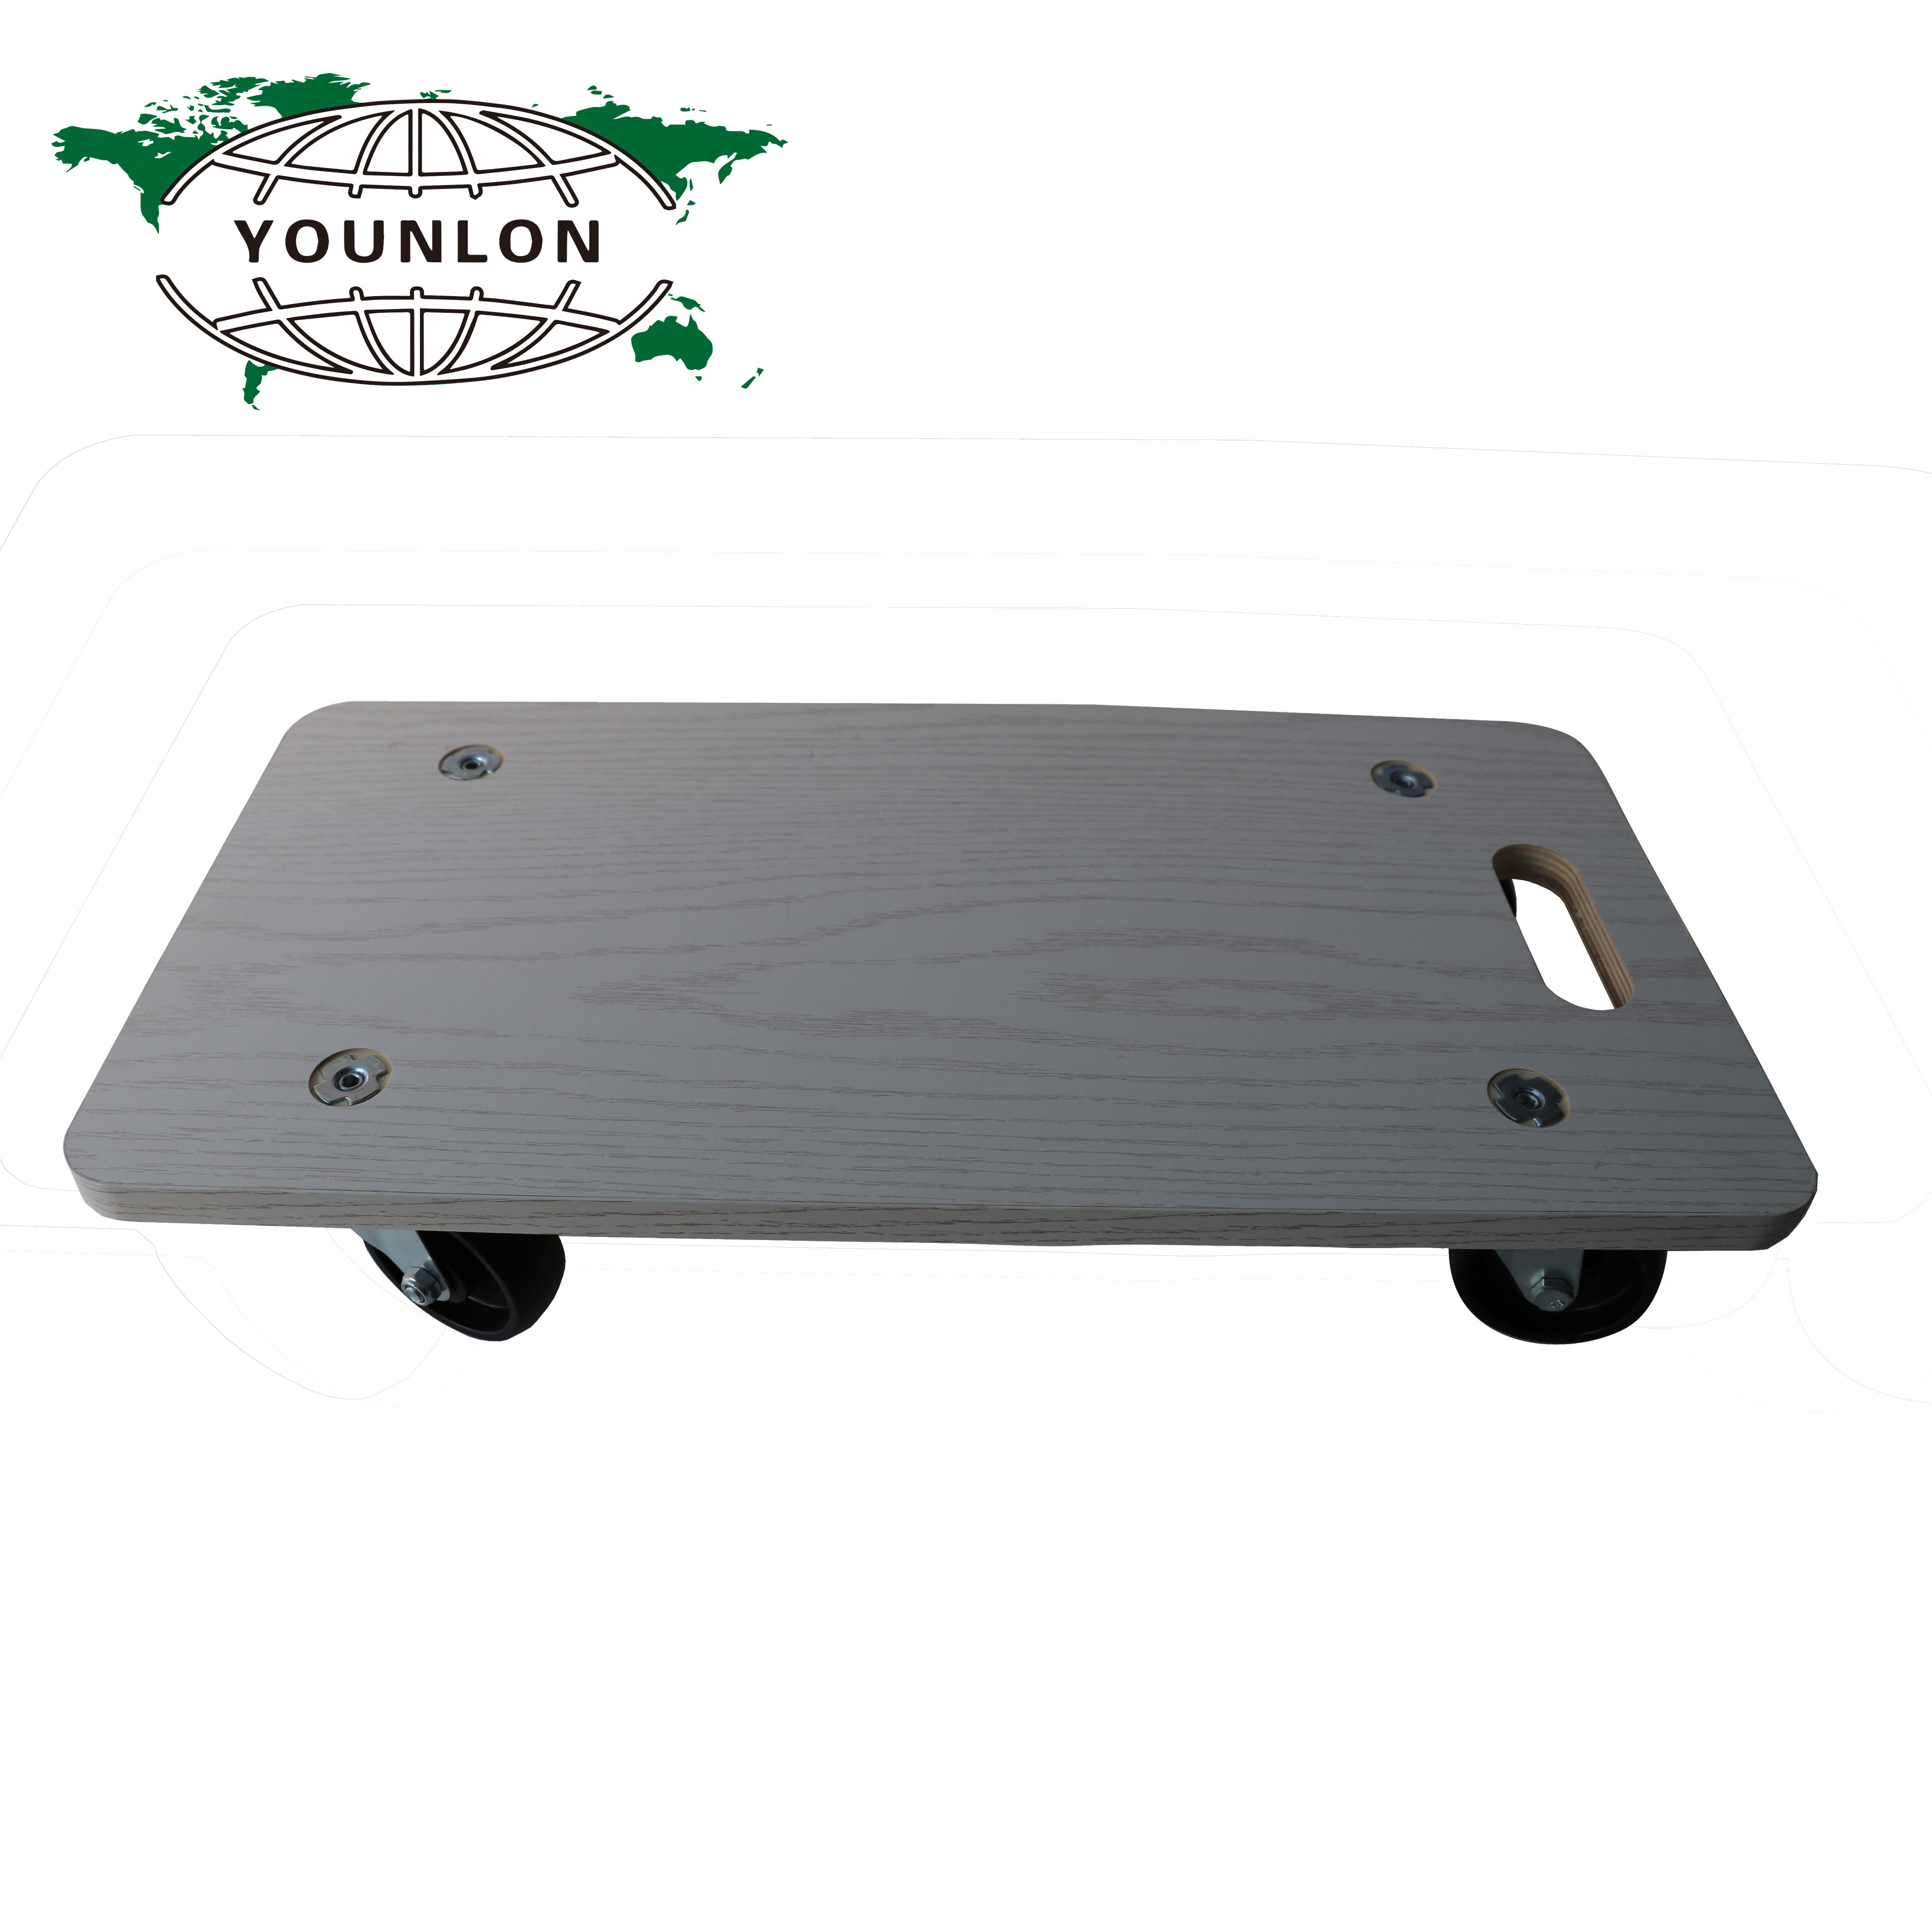 Rectangular casa Trolley Dolly Carro con 4 PP negro ruedas